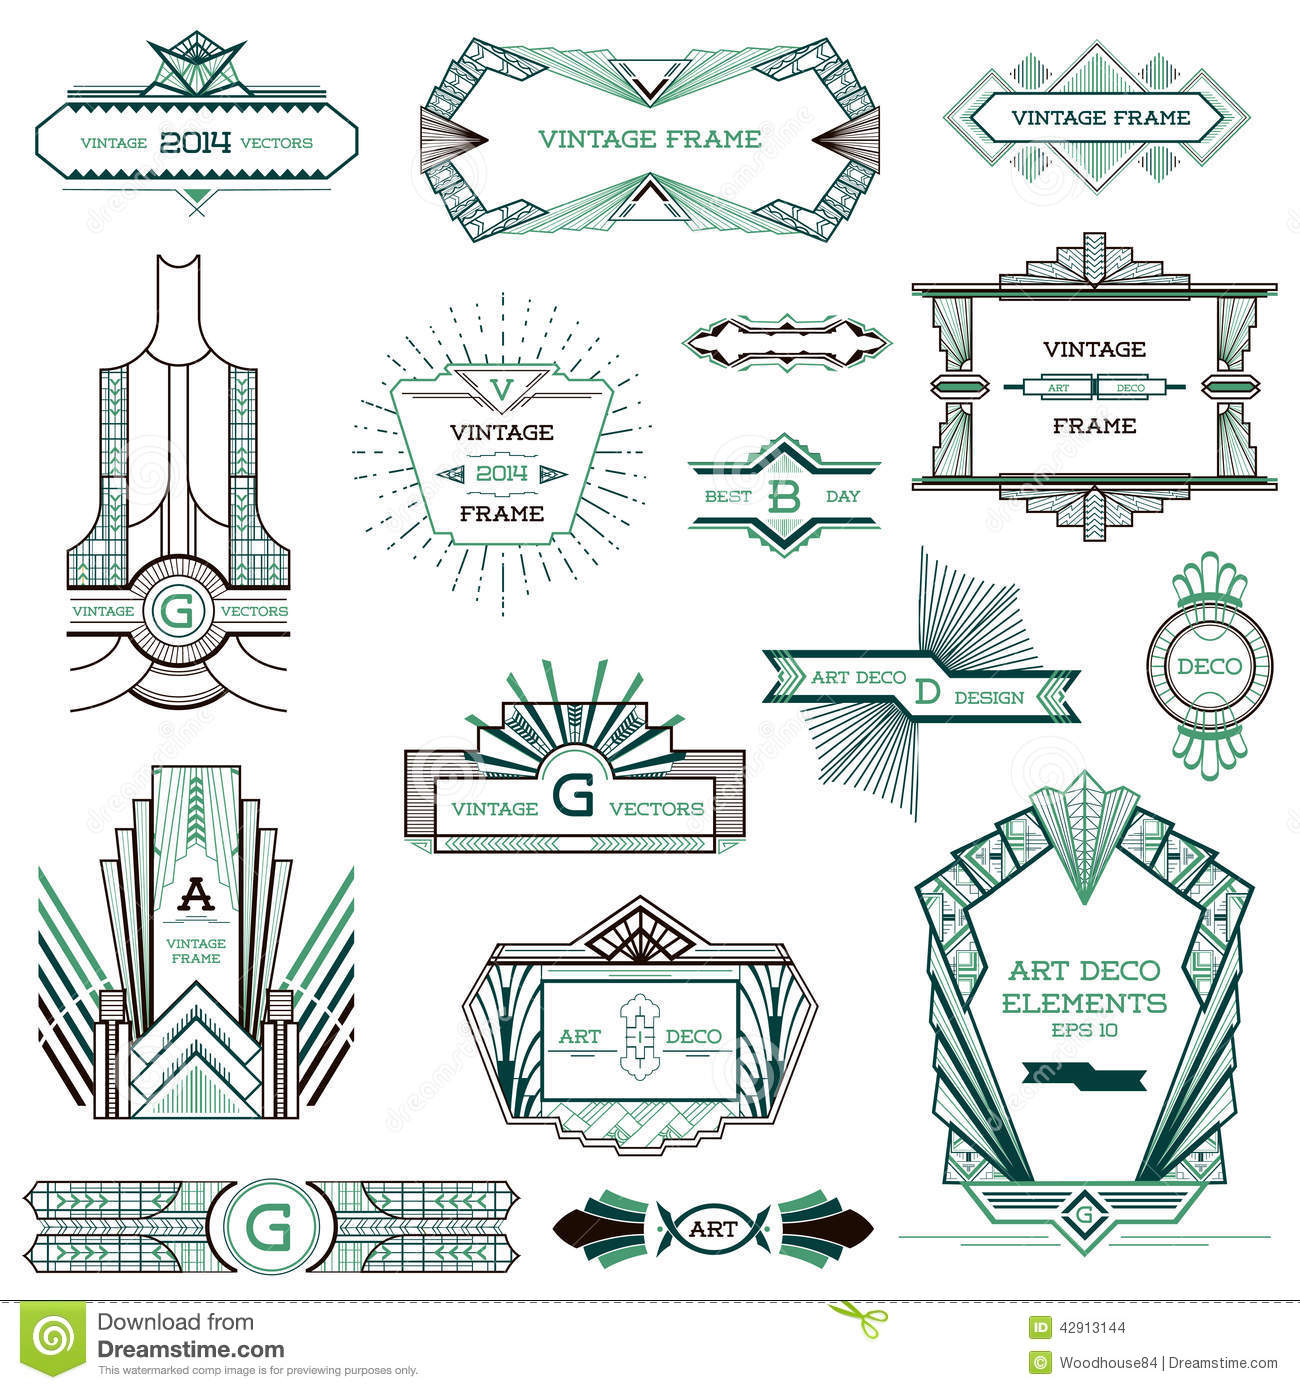 Art Deco Vector Shapes